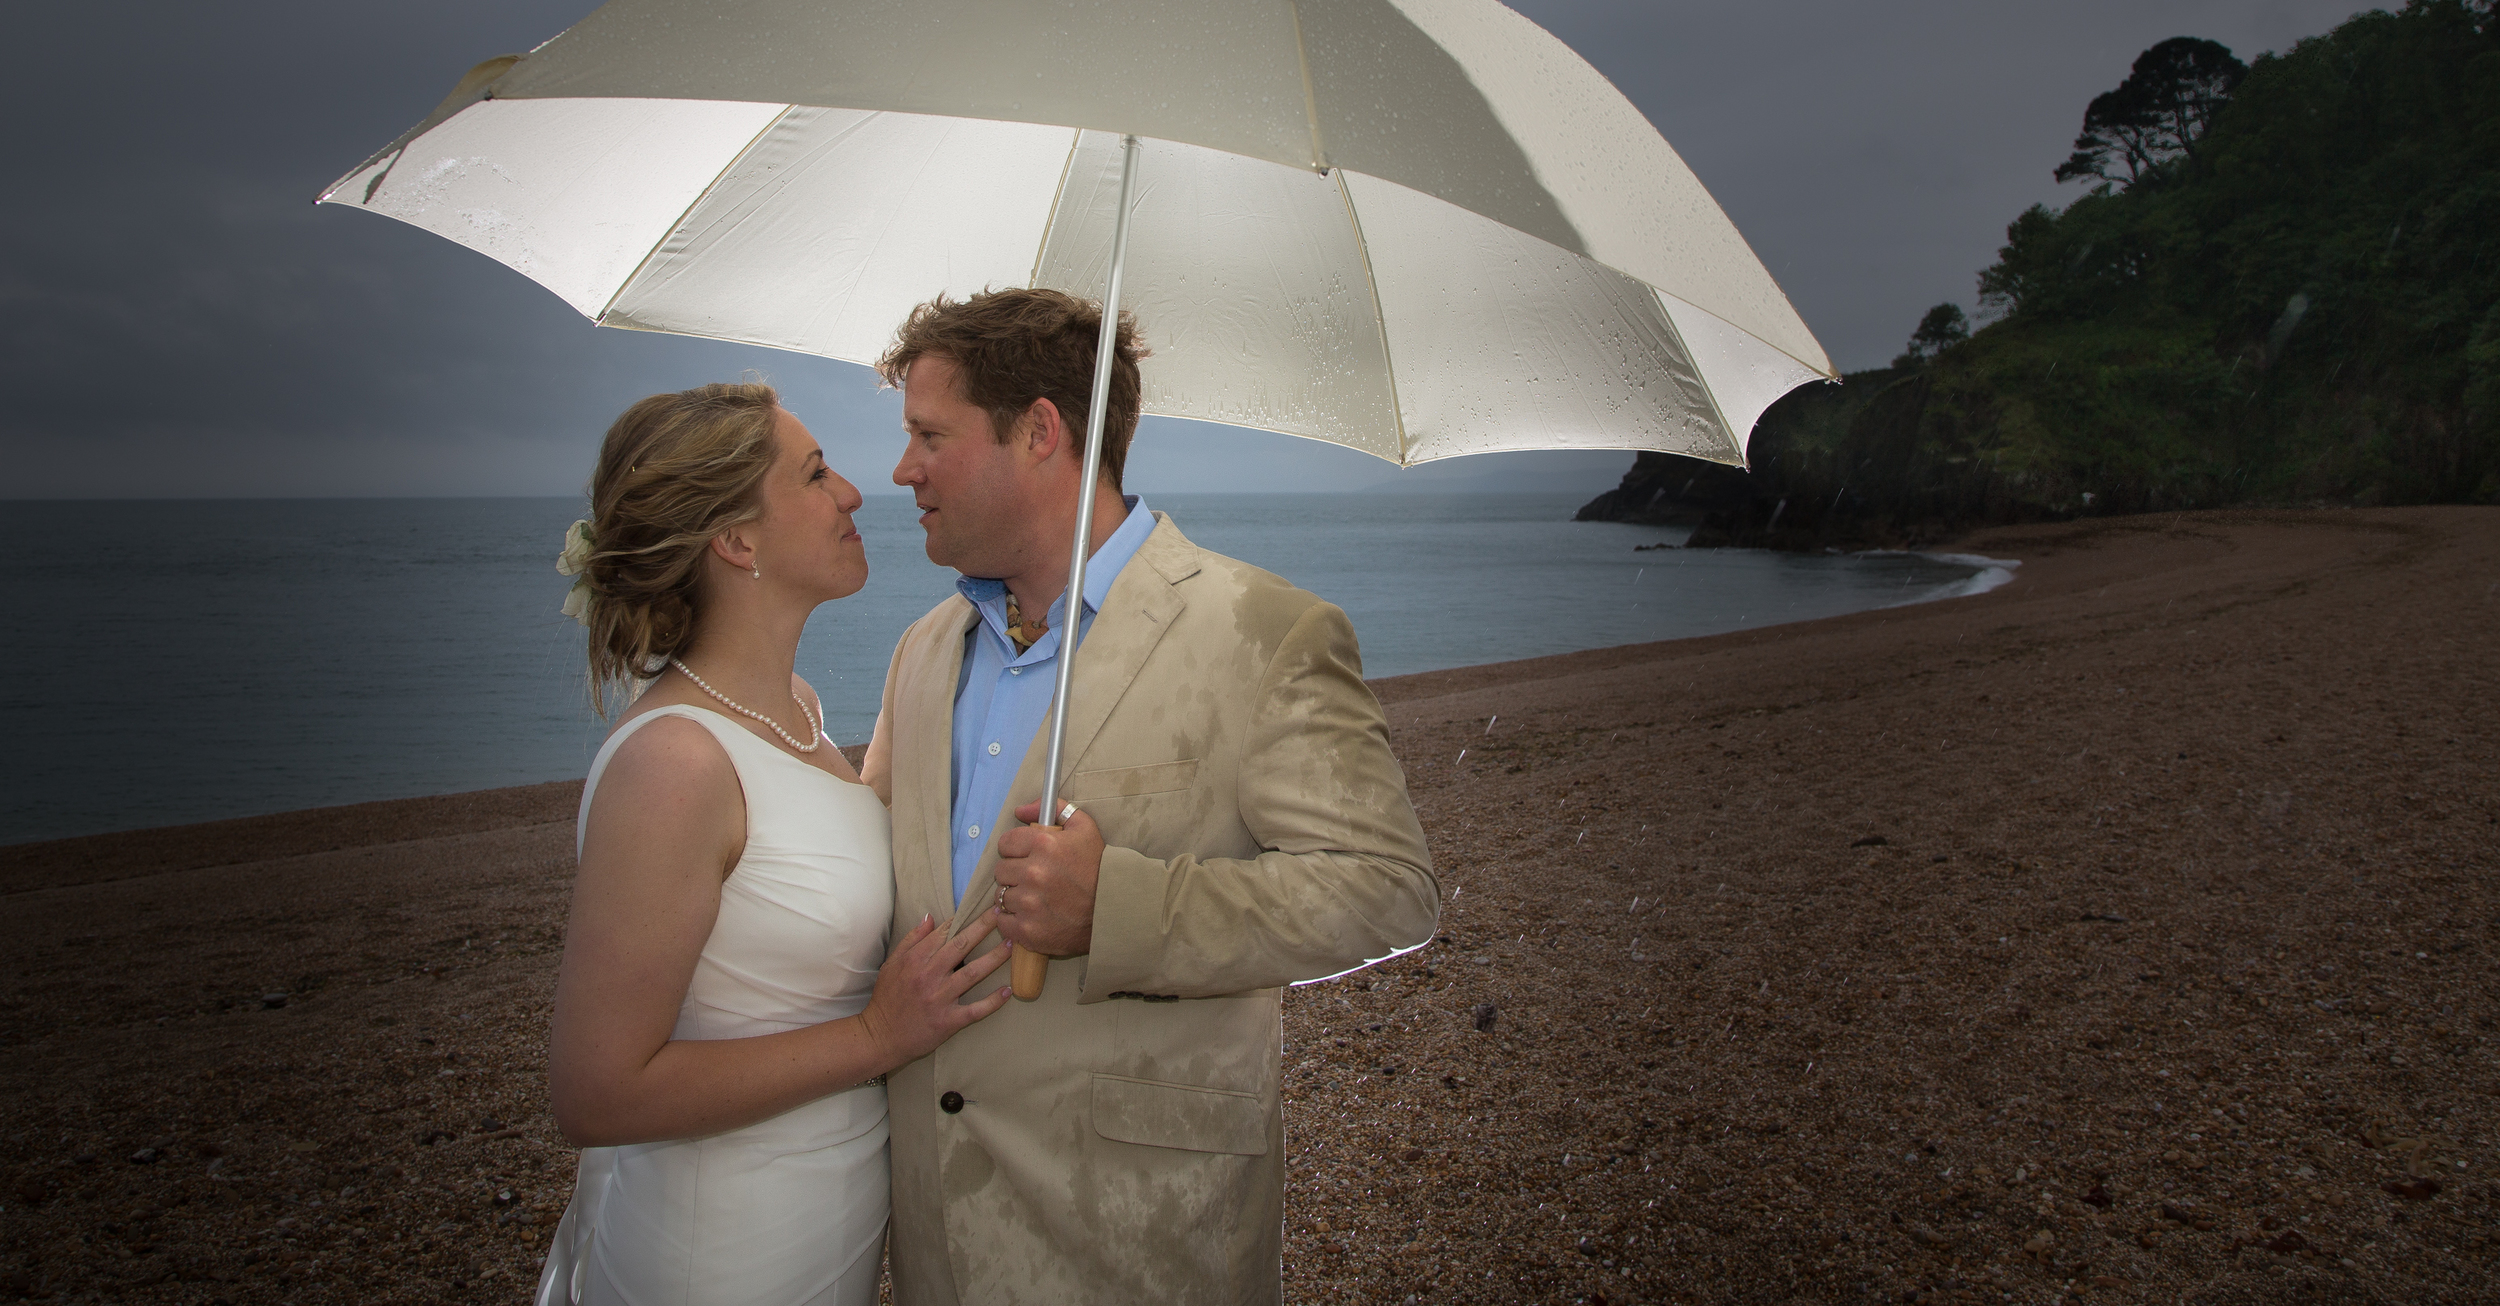 dartmouth wedding couple romance umbrella